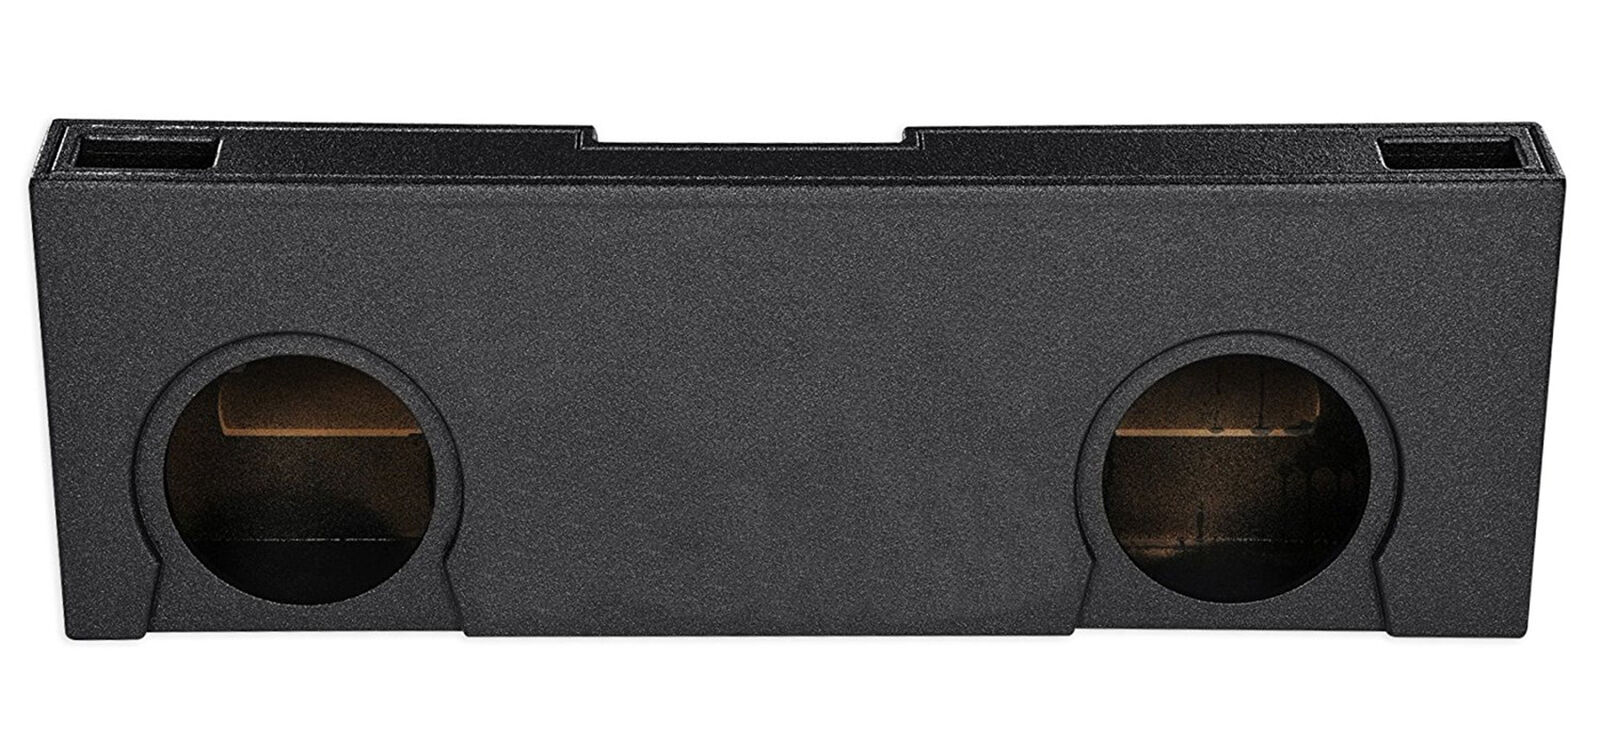 Dual 10 Vented Ported Subwoofer Sub Box Enclosure For 07 13 Gmc Jeep Cj7 1 Of 5free Shipping